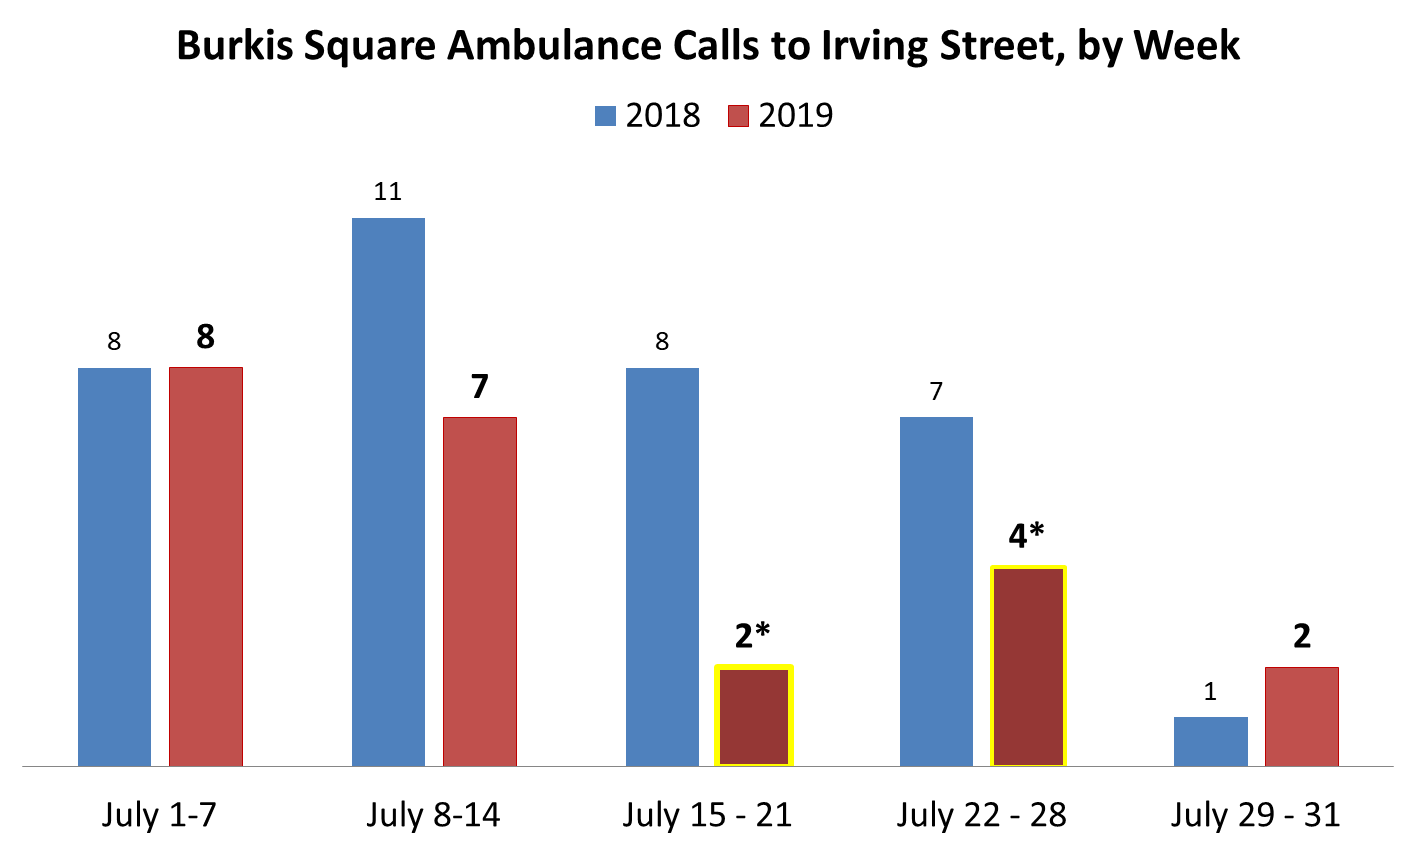 *DFI Engagement Workers worked weekday afternoons from 12 pm to 6 pm from July 15 to July 26, 2019 (and 2 weeks in August 2019). The week of July 15, 2019, there were 2 evening calls for ambulances to Irving Street. The week of July 22, 2019, there was 1 morning call, 2 afternoon calls, and 1 evening call for ambulances to Irving Street.